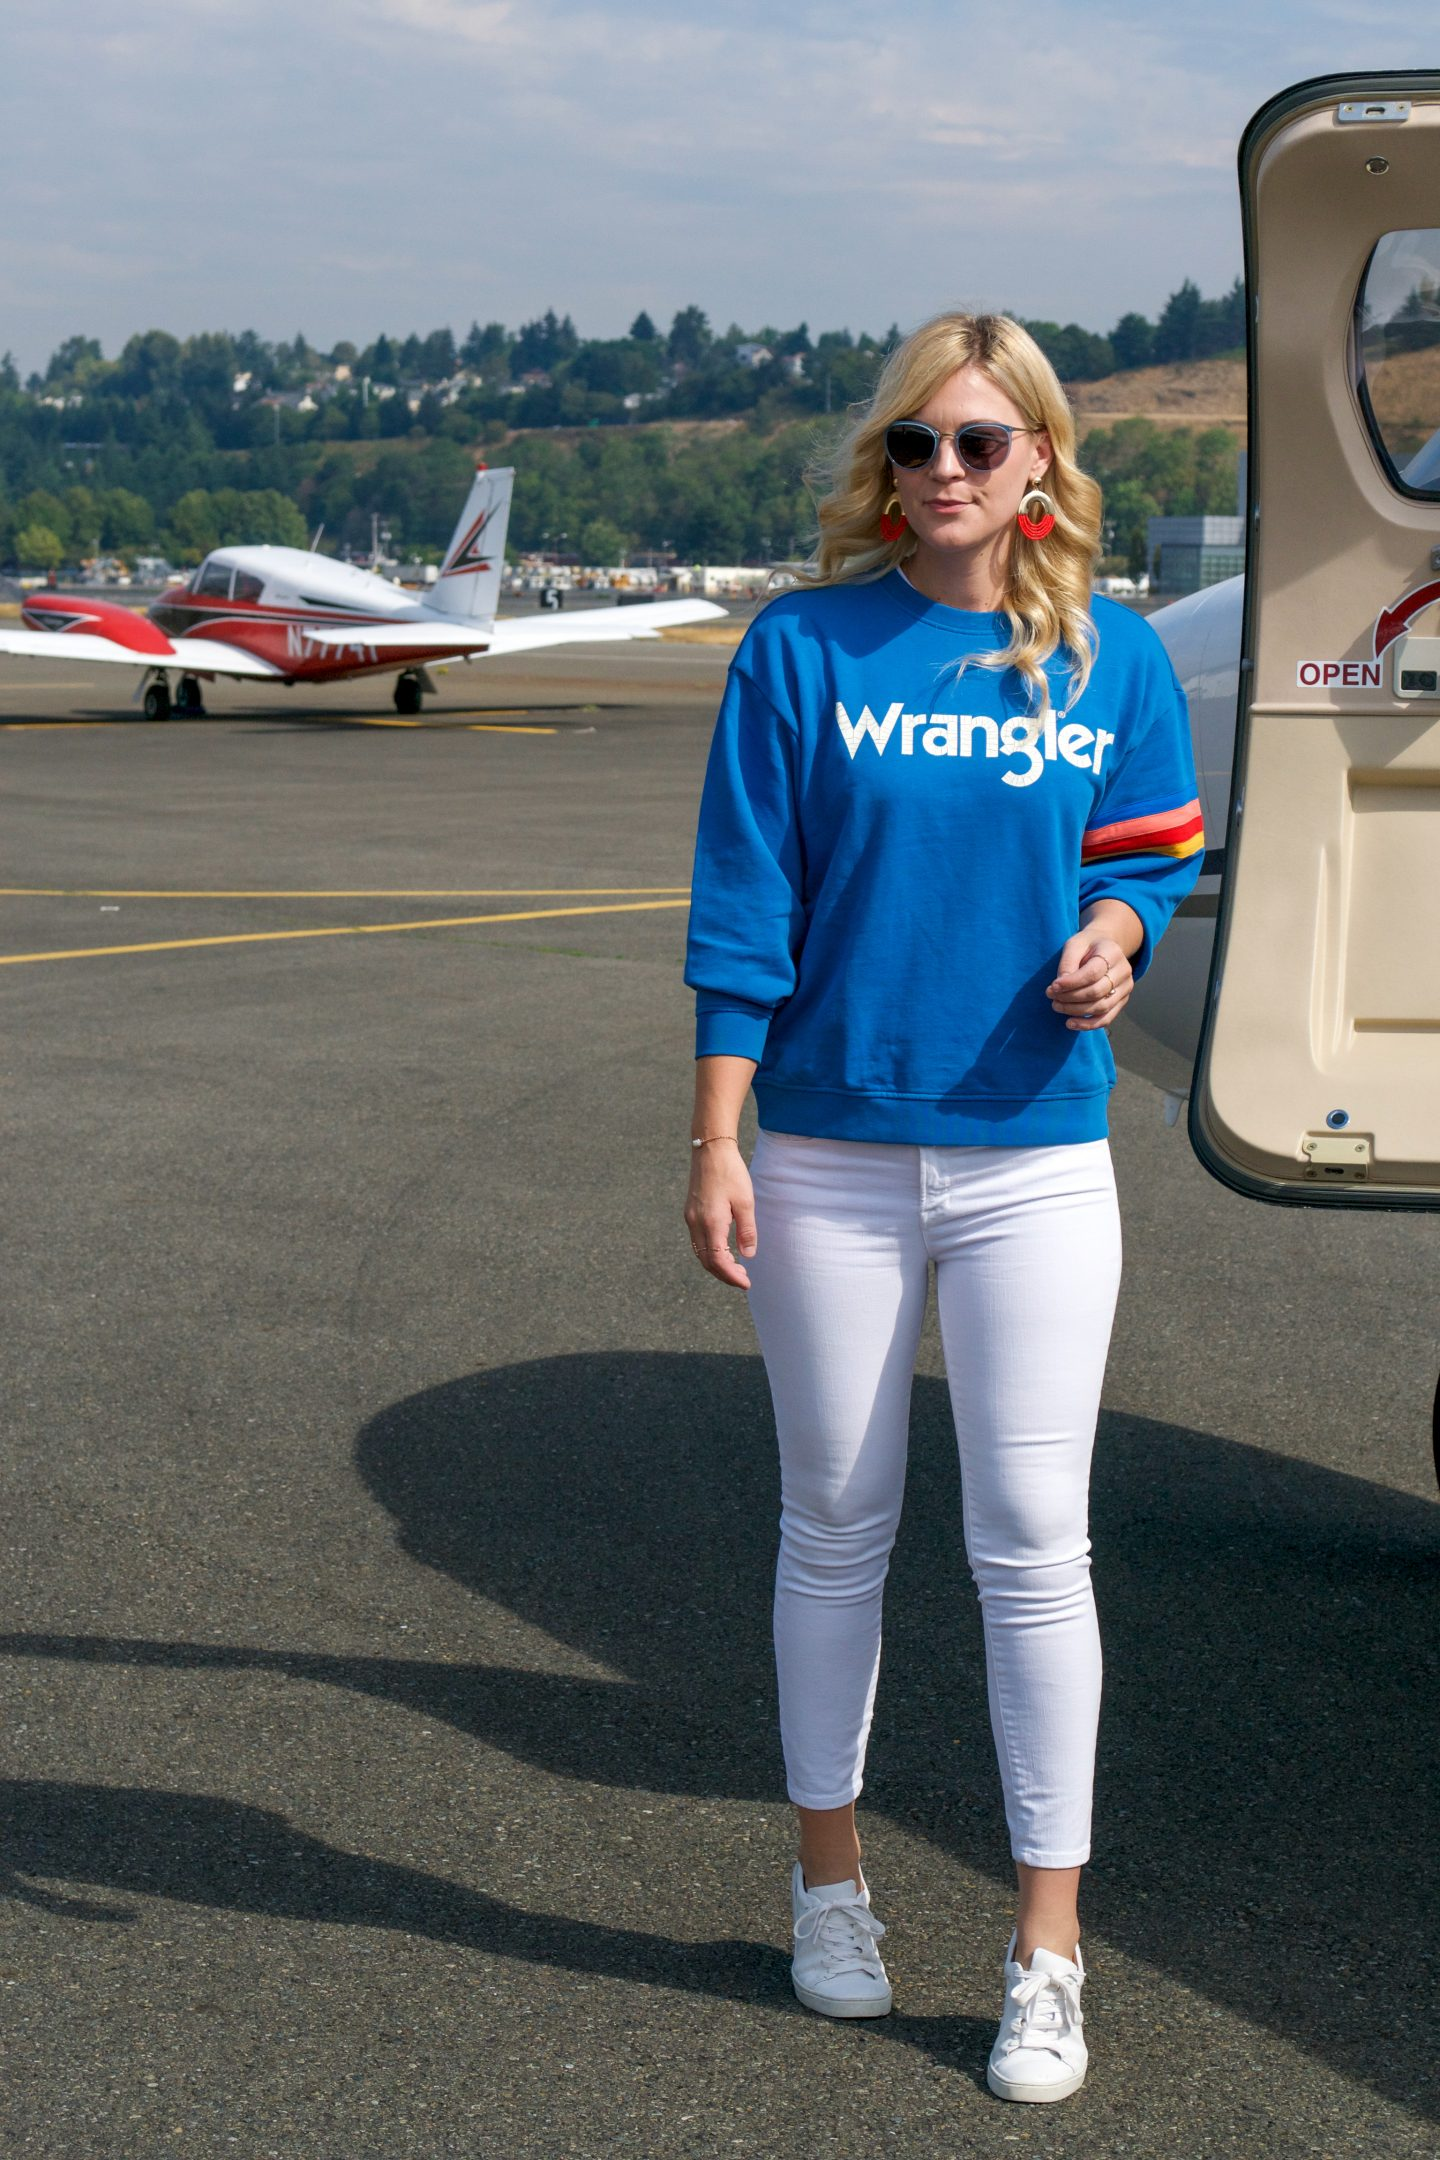 Up and Away in Wrangler